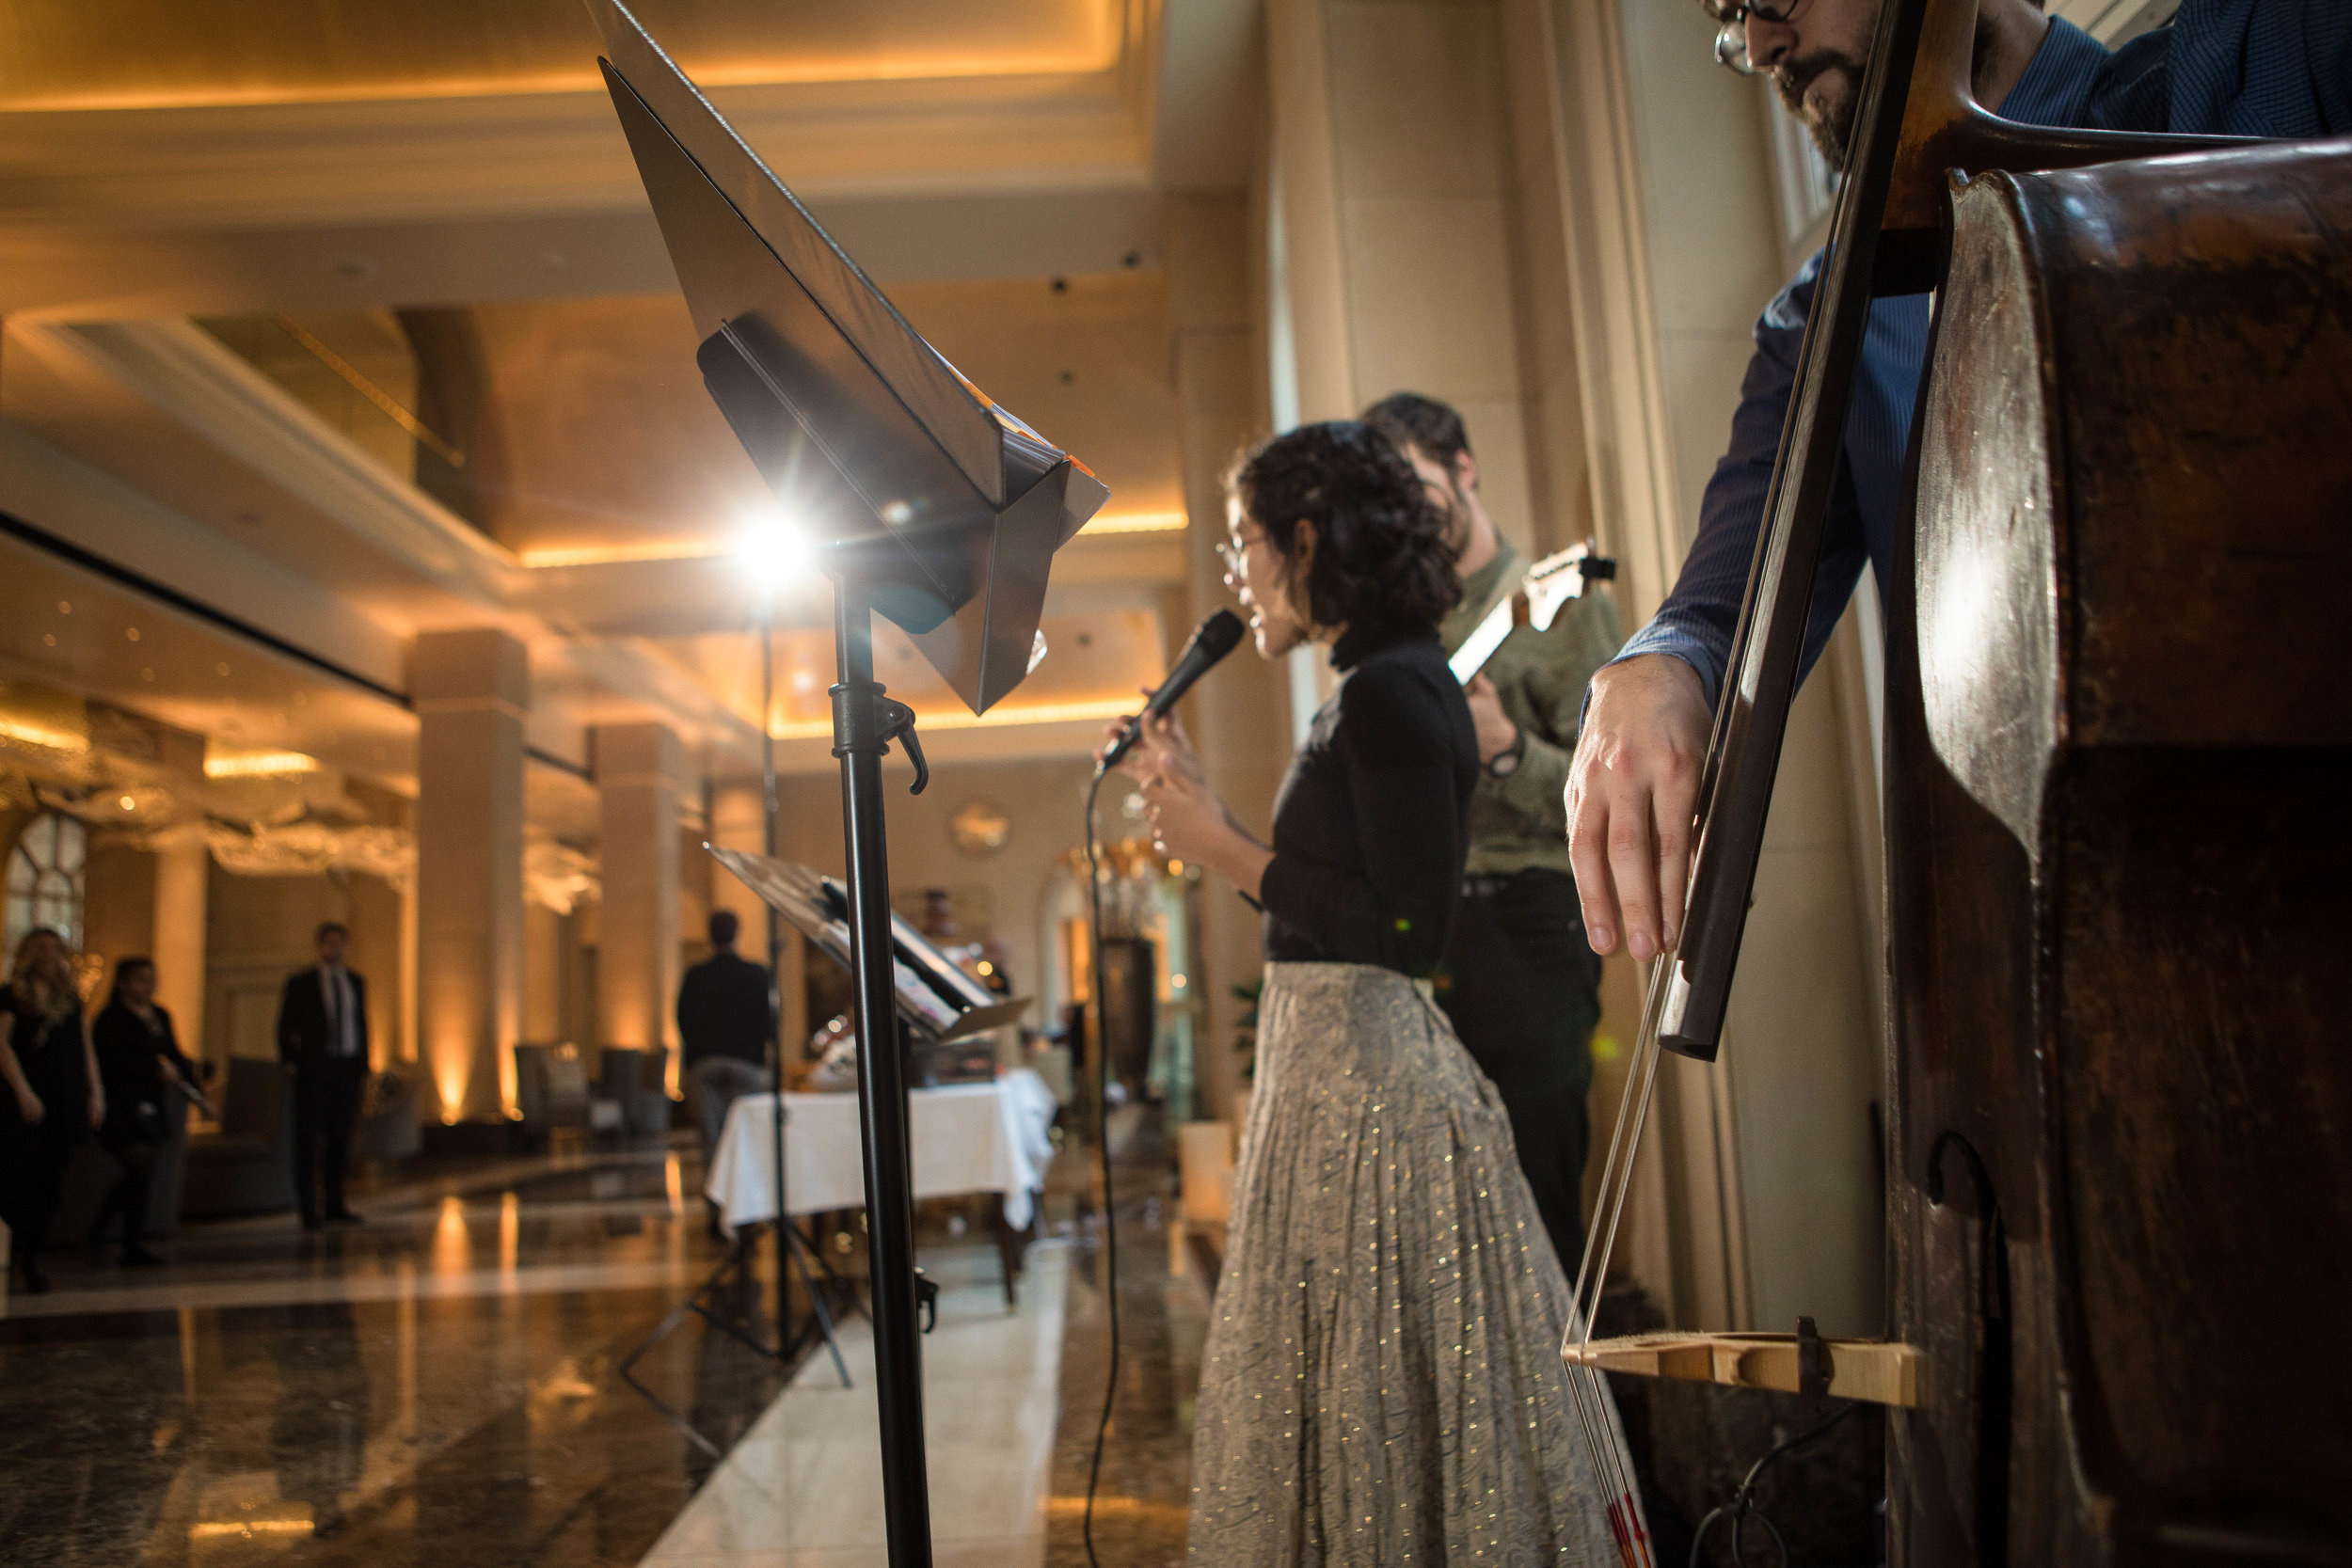 The entire lobby during the Beau Nash grand opening event was filled with conversation, laughs and live vocals.